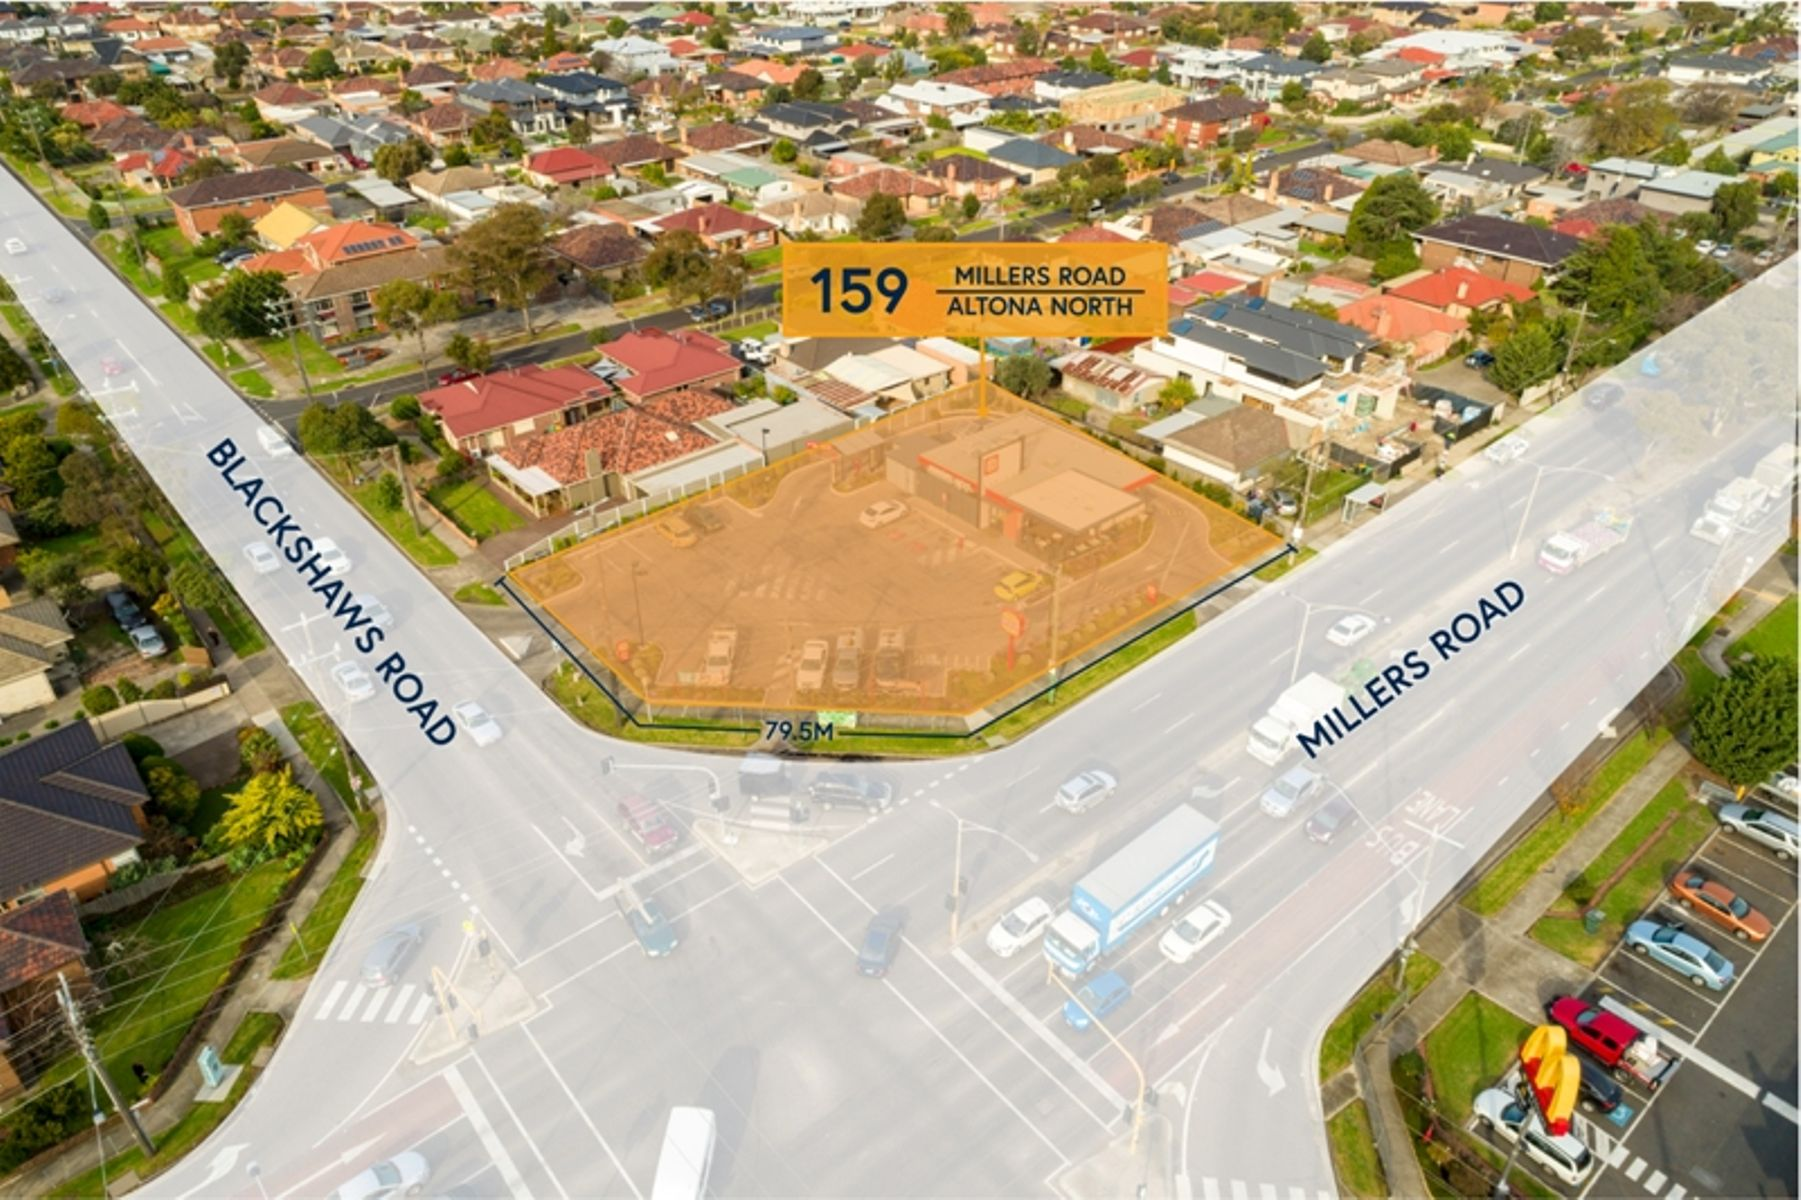 TES20339 581 Millers Rd Altona North   Overlay1 PROOF 2